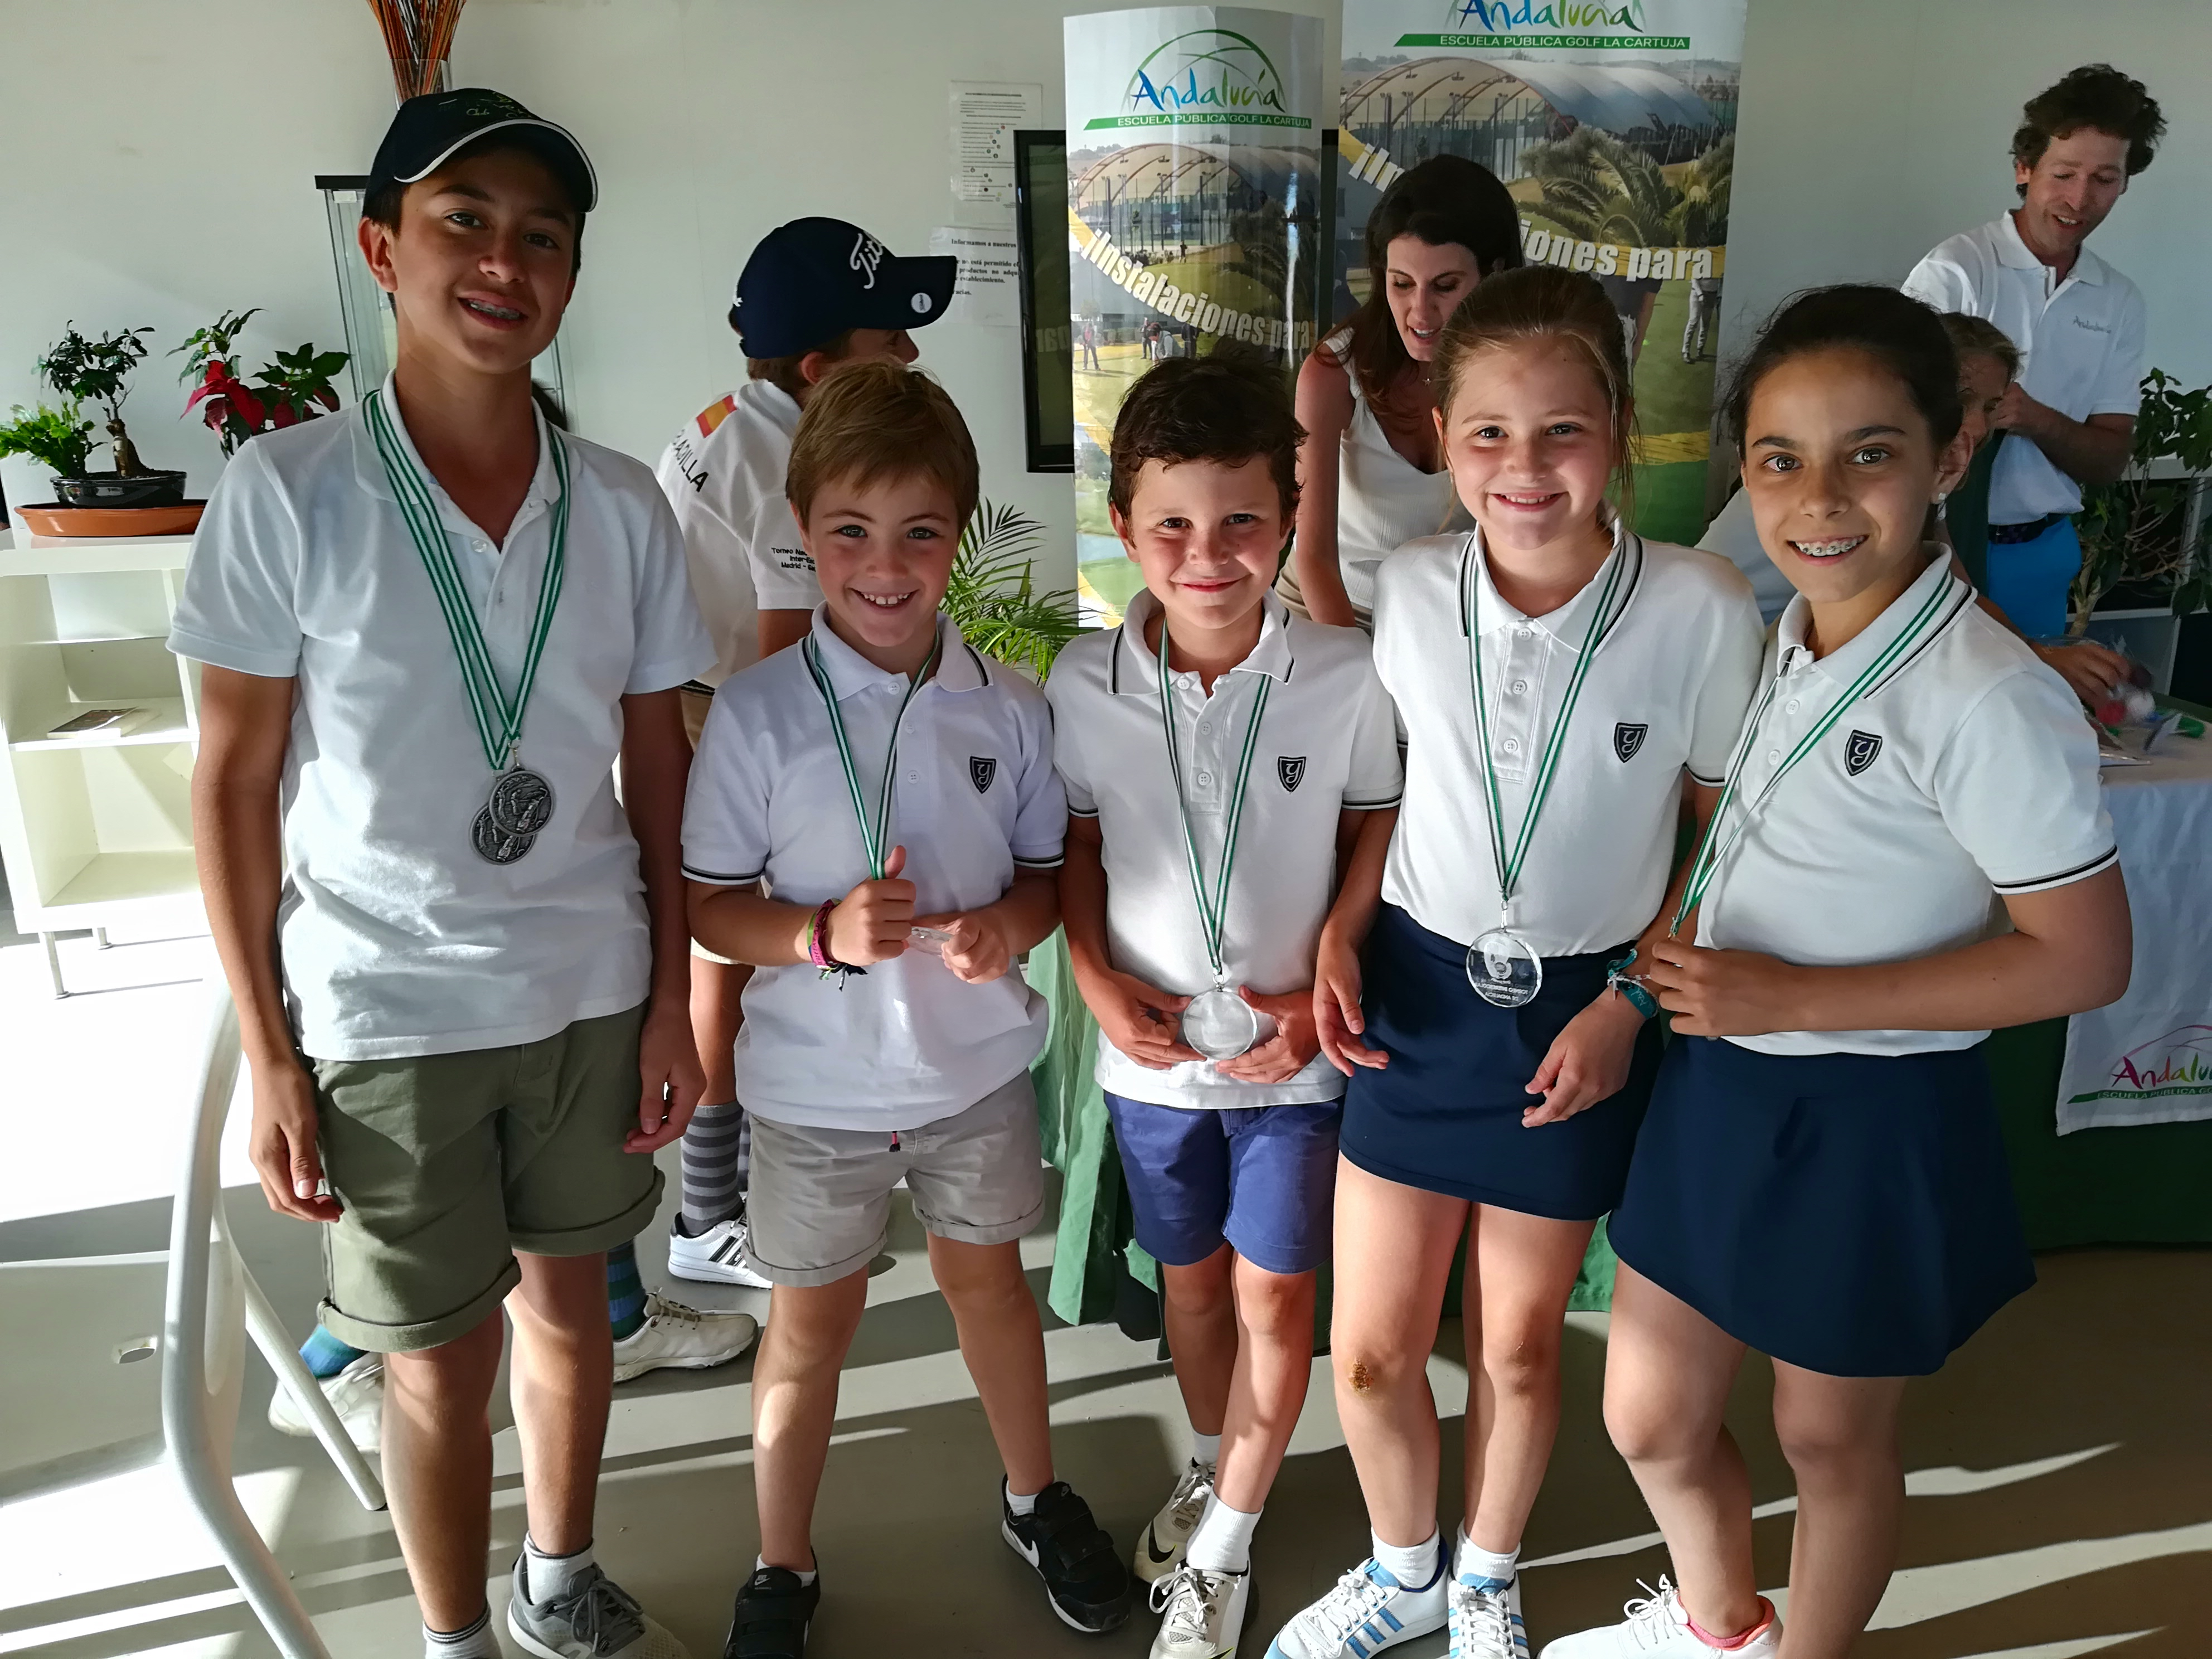 Yago School students participated in a Golf Fair and Tournament